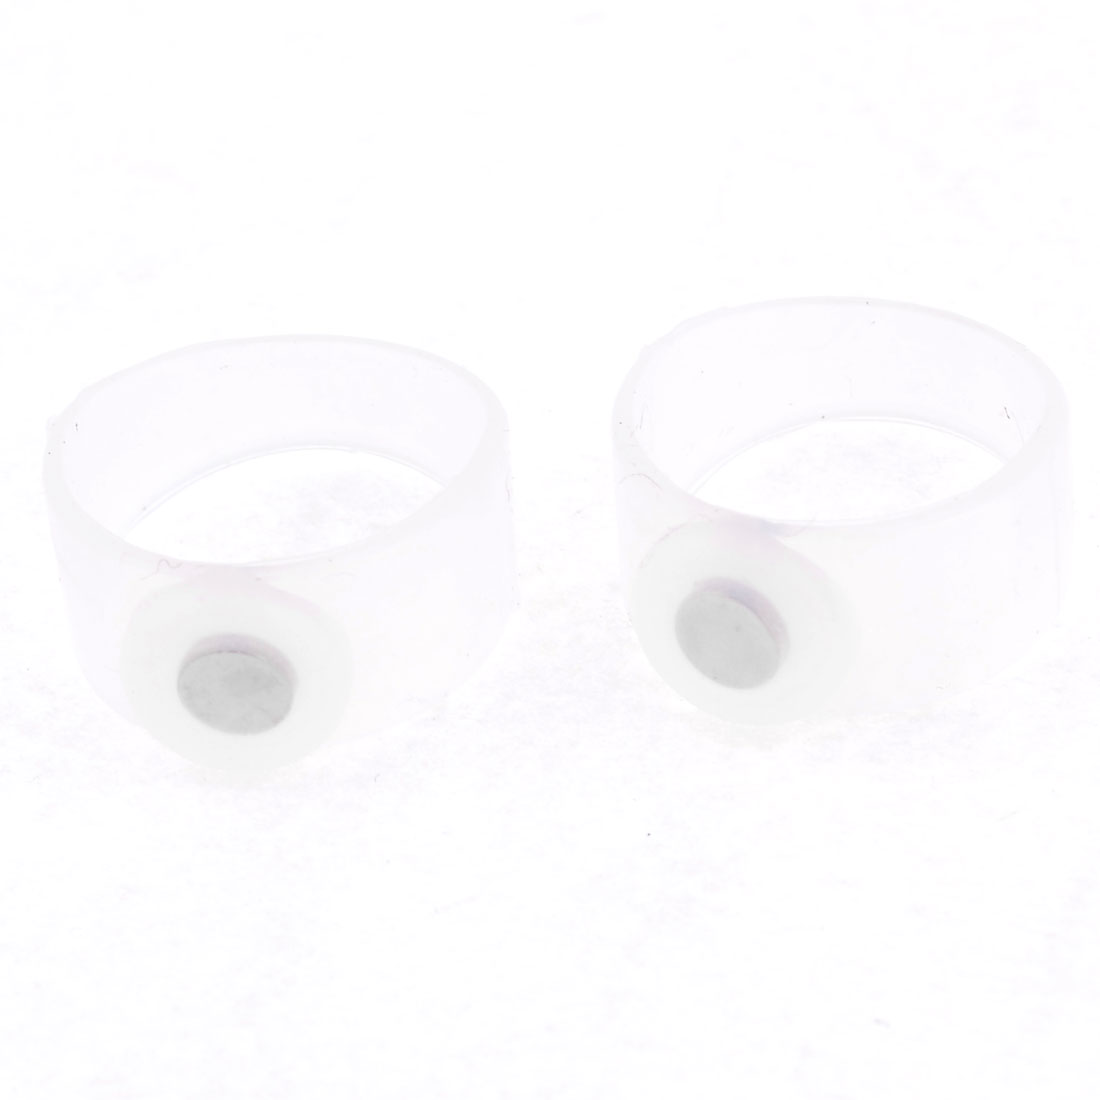 Pair Body Slimming Silicone Magnetic Toe Rings Weight Lose Tool